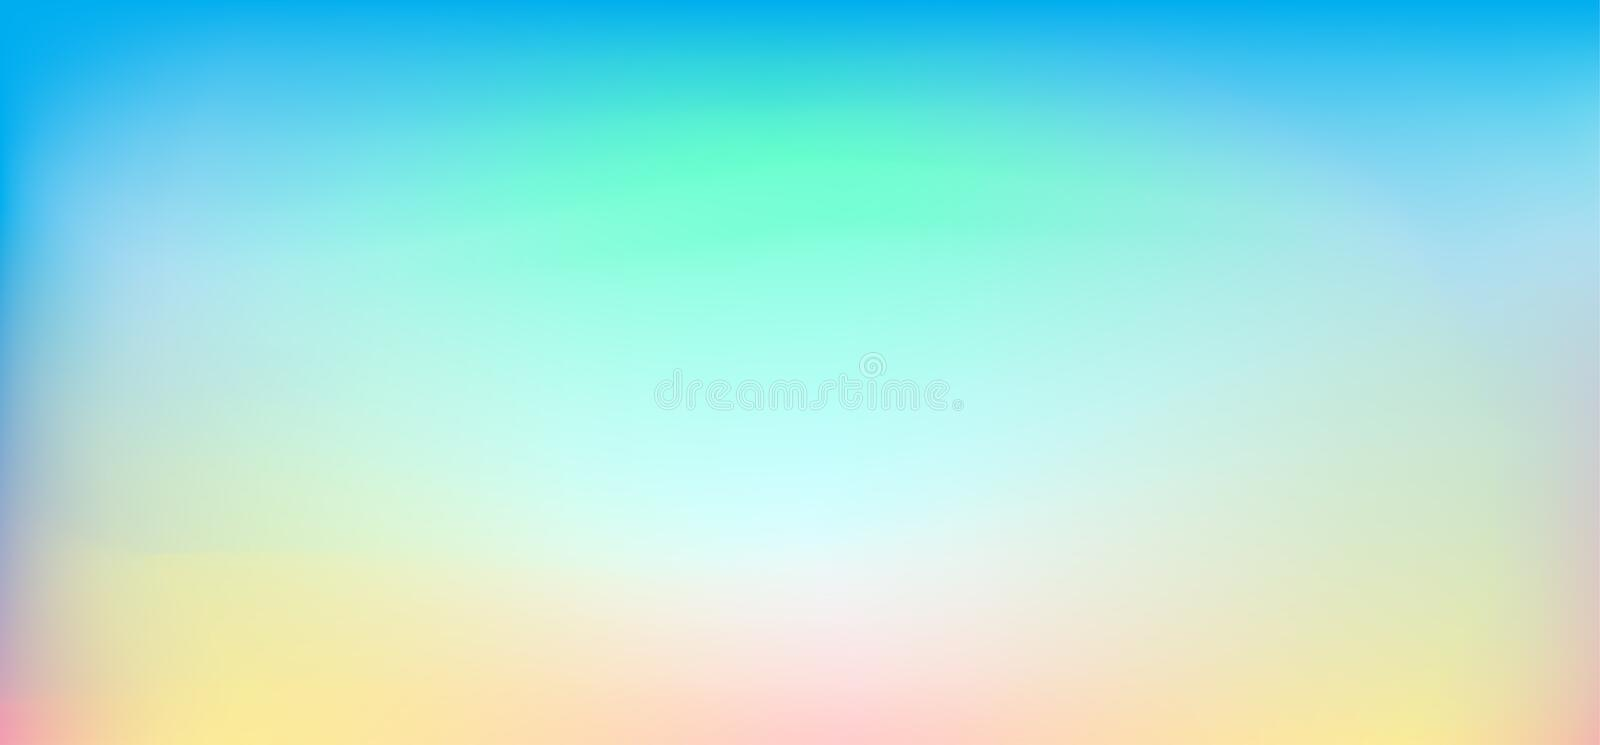 Abstract Spring Holiday blurred background, sunset sky banner blue skyline wallpaper stock illustration